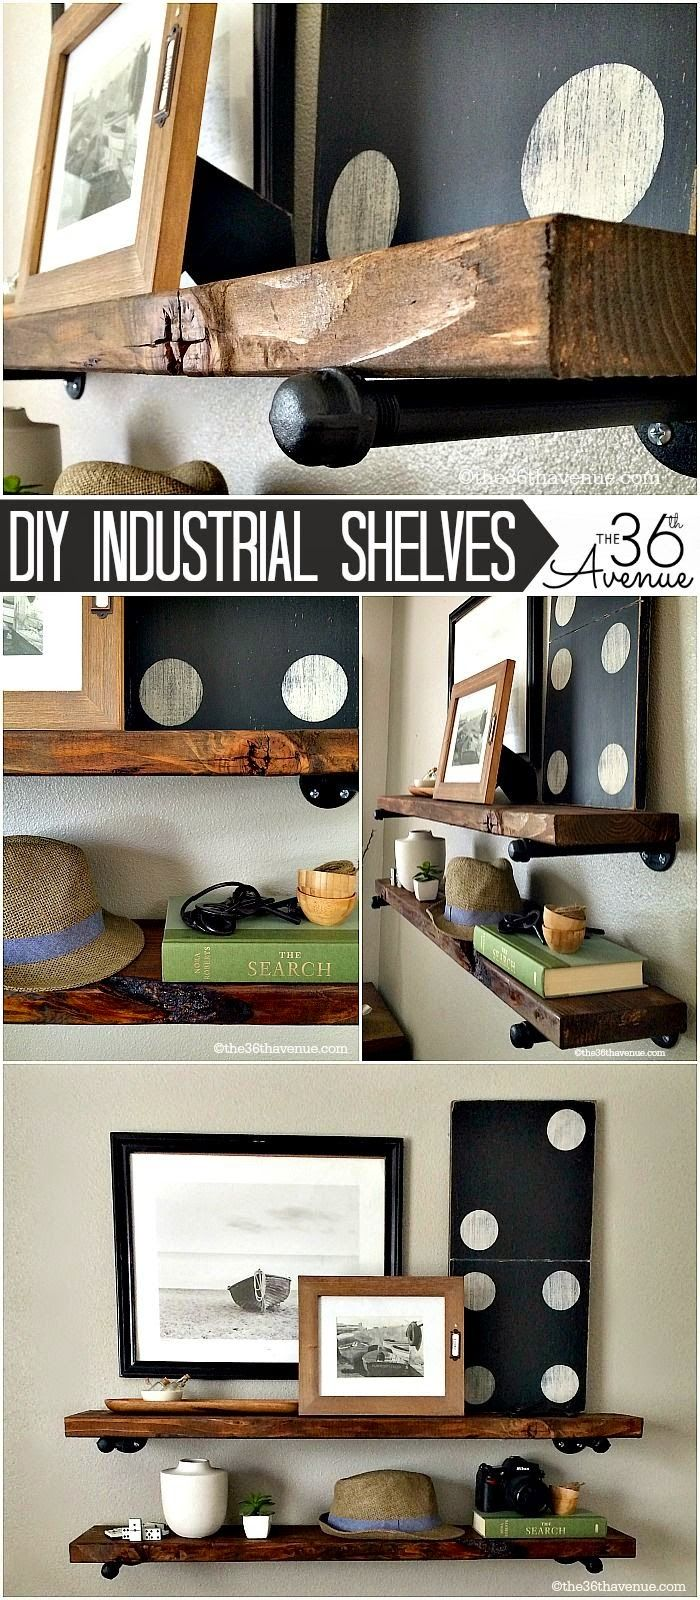 Best DIY Projects: DIY - Home Decor : These DIY Industrial Shelving is super easy to make and a great addition to any room!